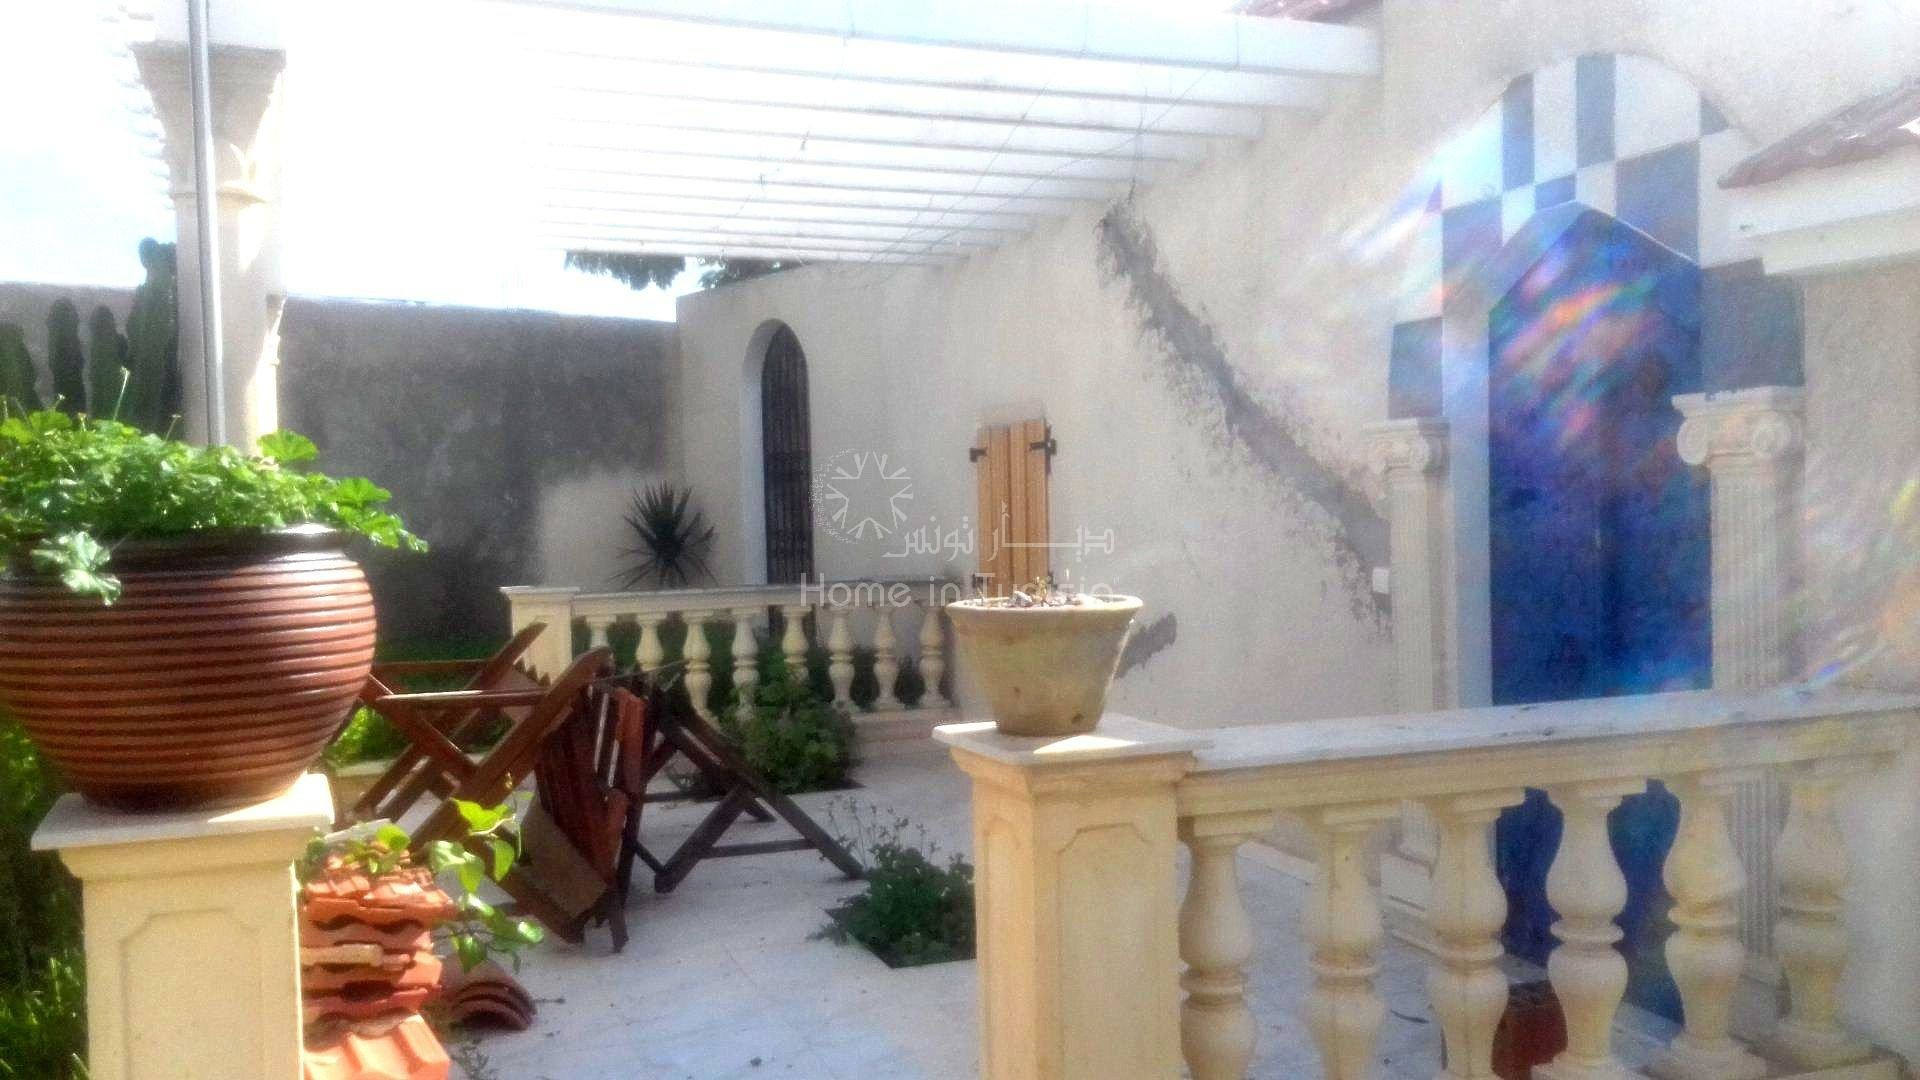 Sale Bed and breakfast - Kalaa El Kebira - Tunisia